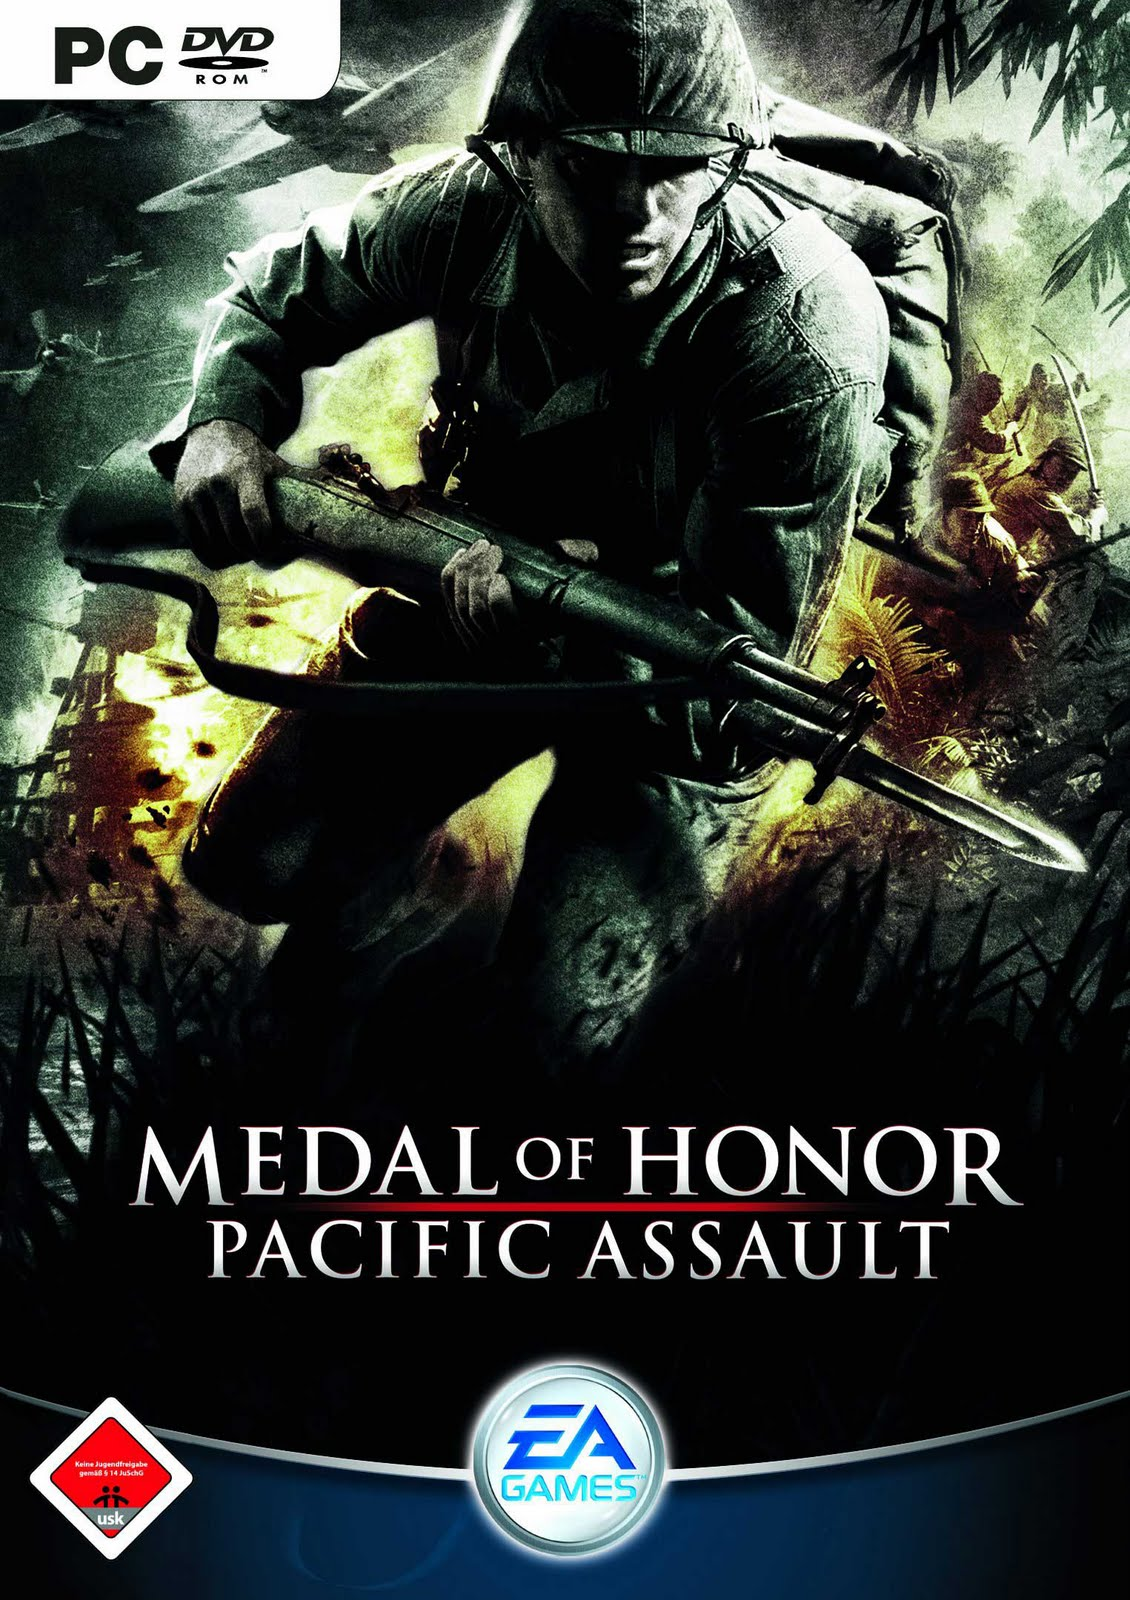 Medal of honor 2010 game download